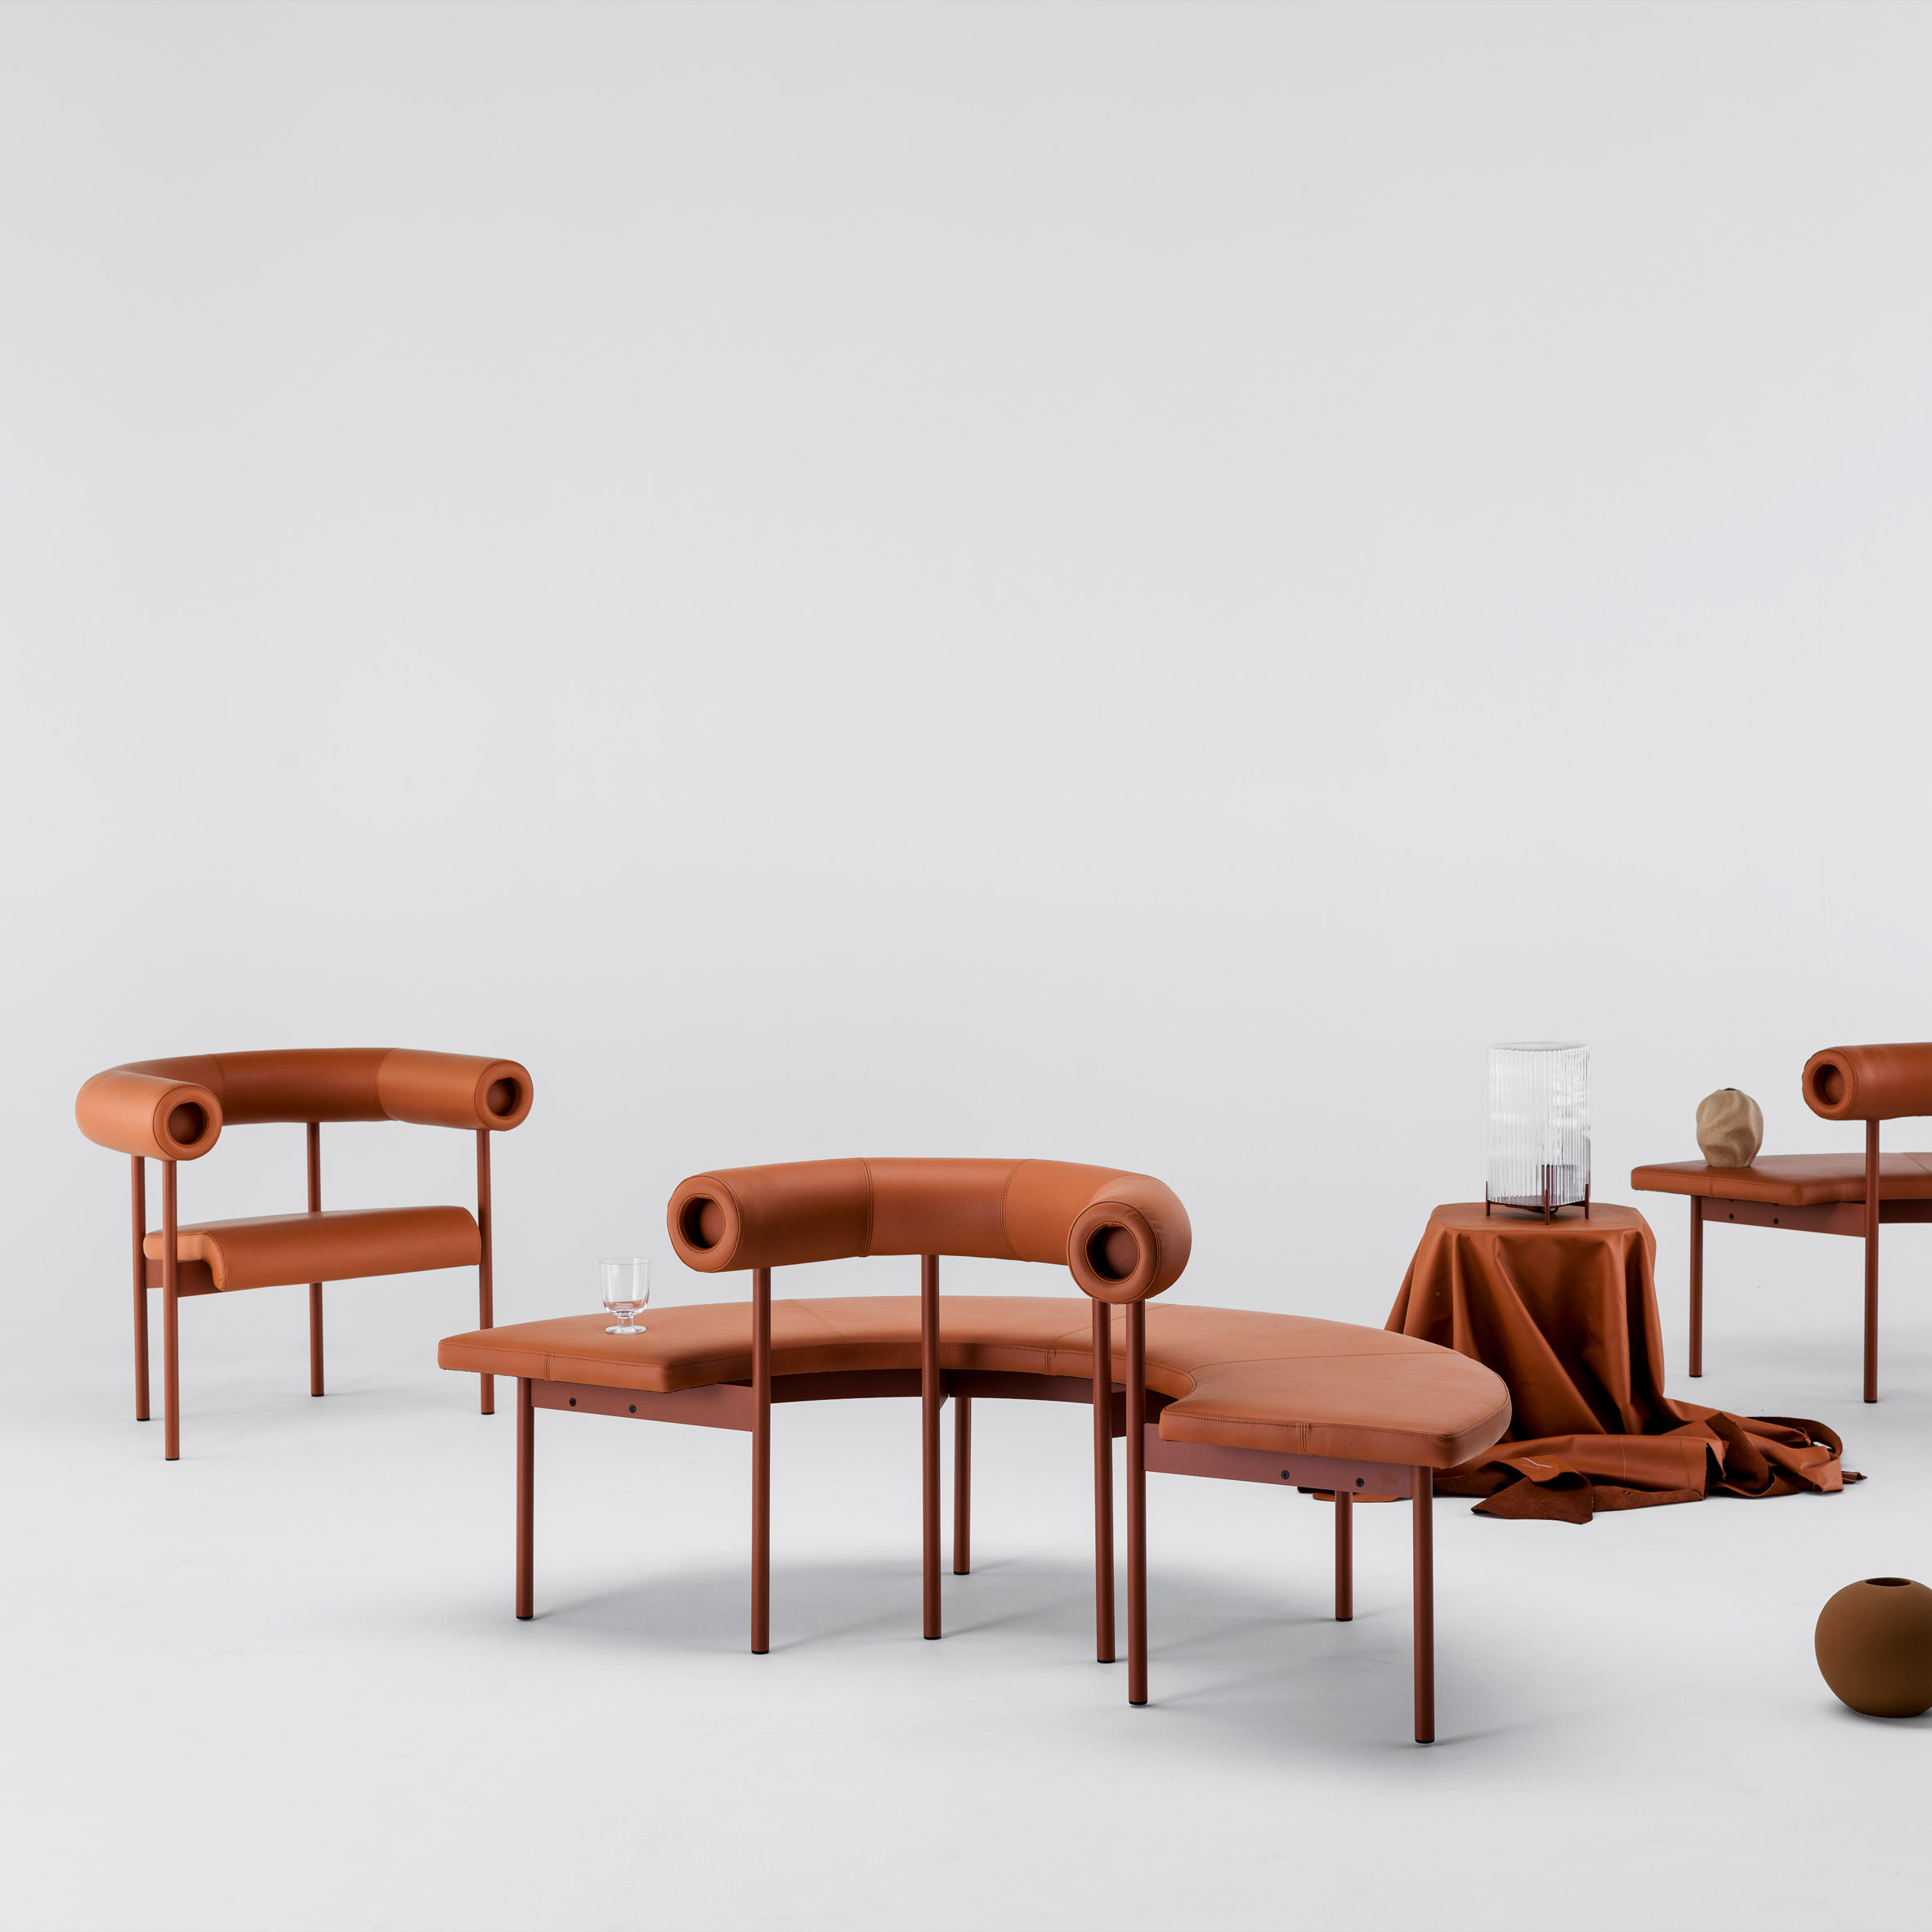 Font sofa system by Matti Klenell for Offecct